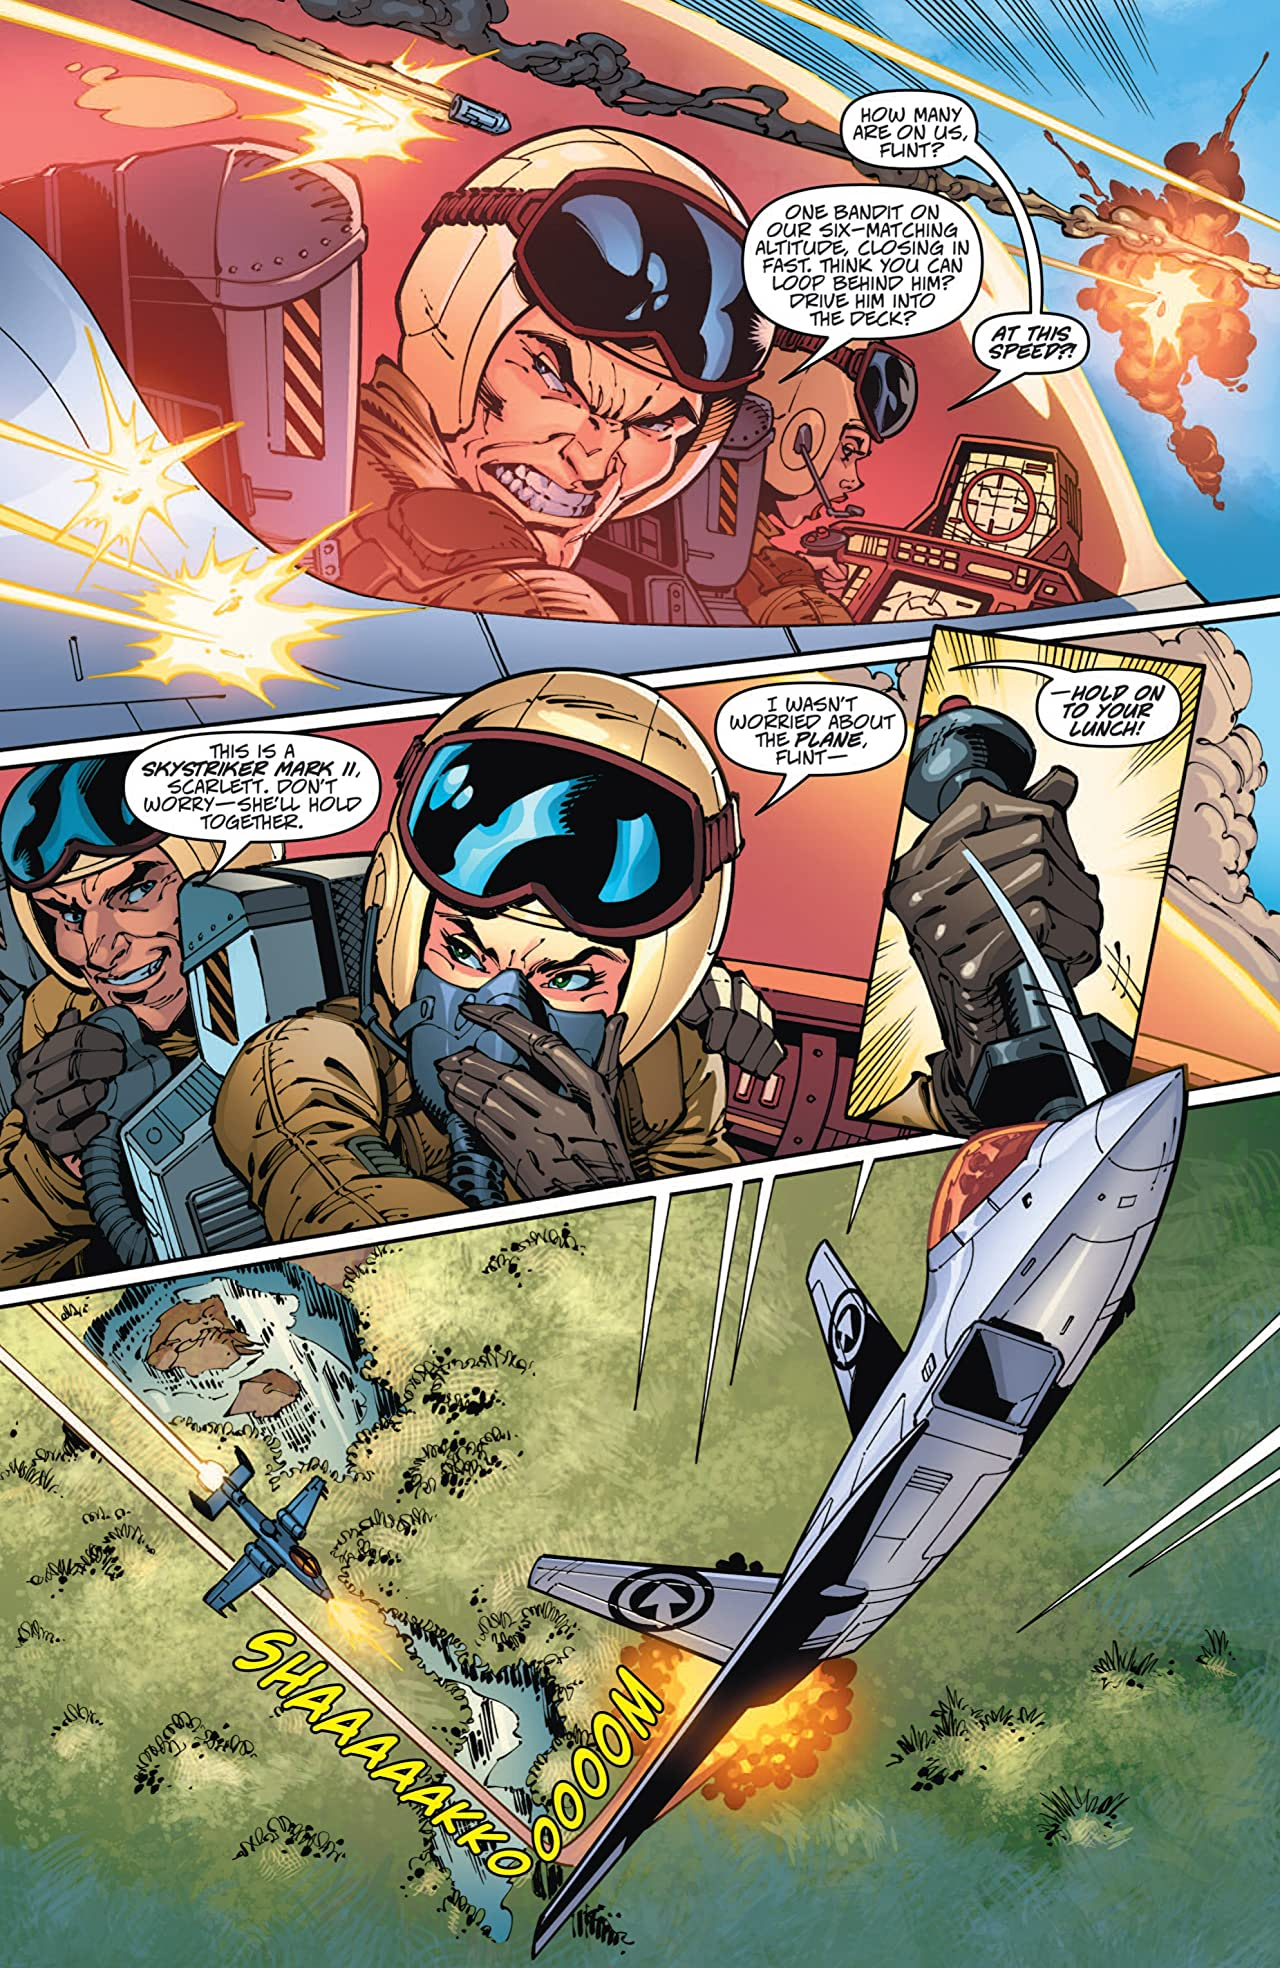 Danger Girl/G.I. Joe #1 (of 4)